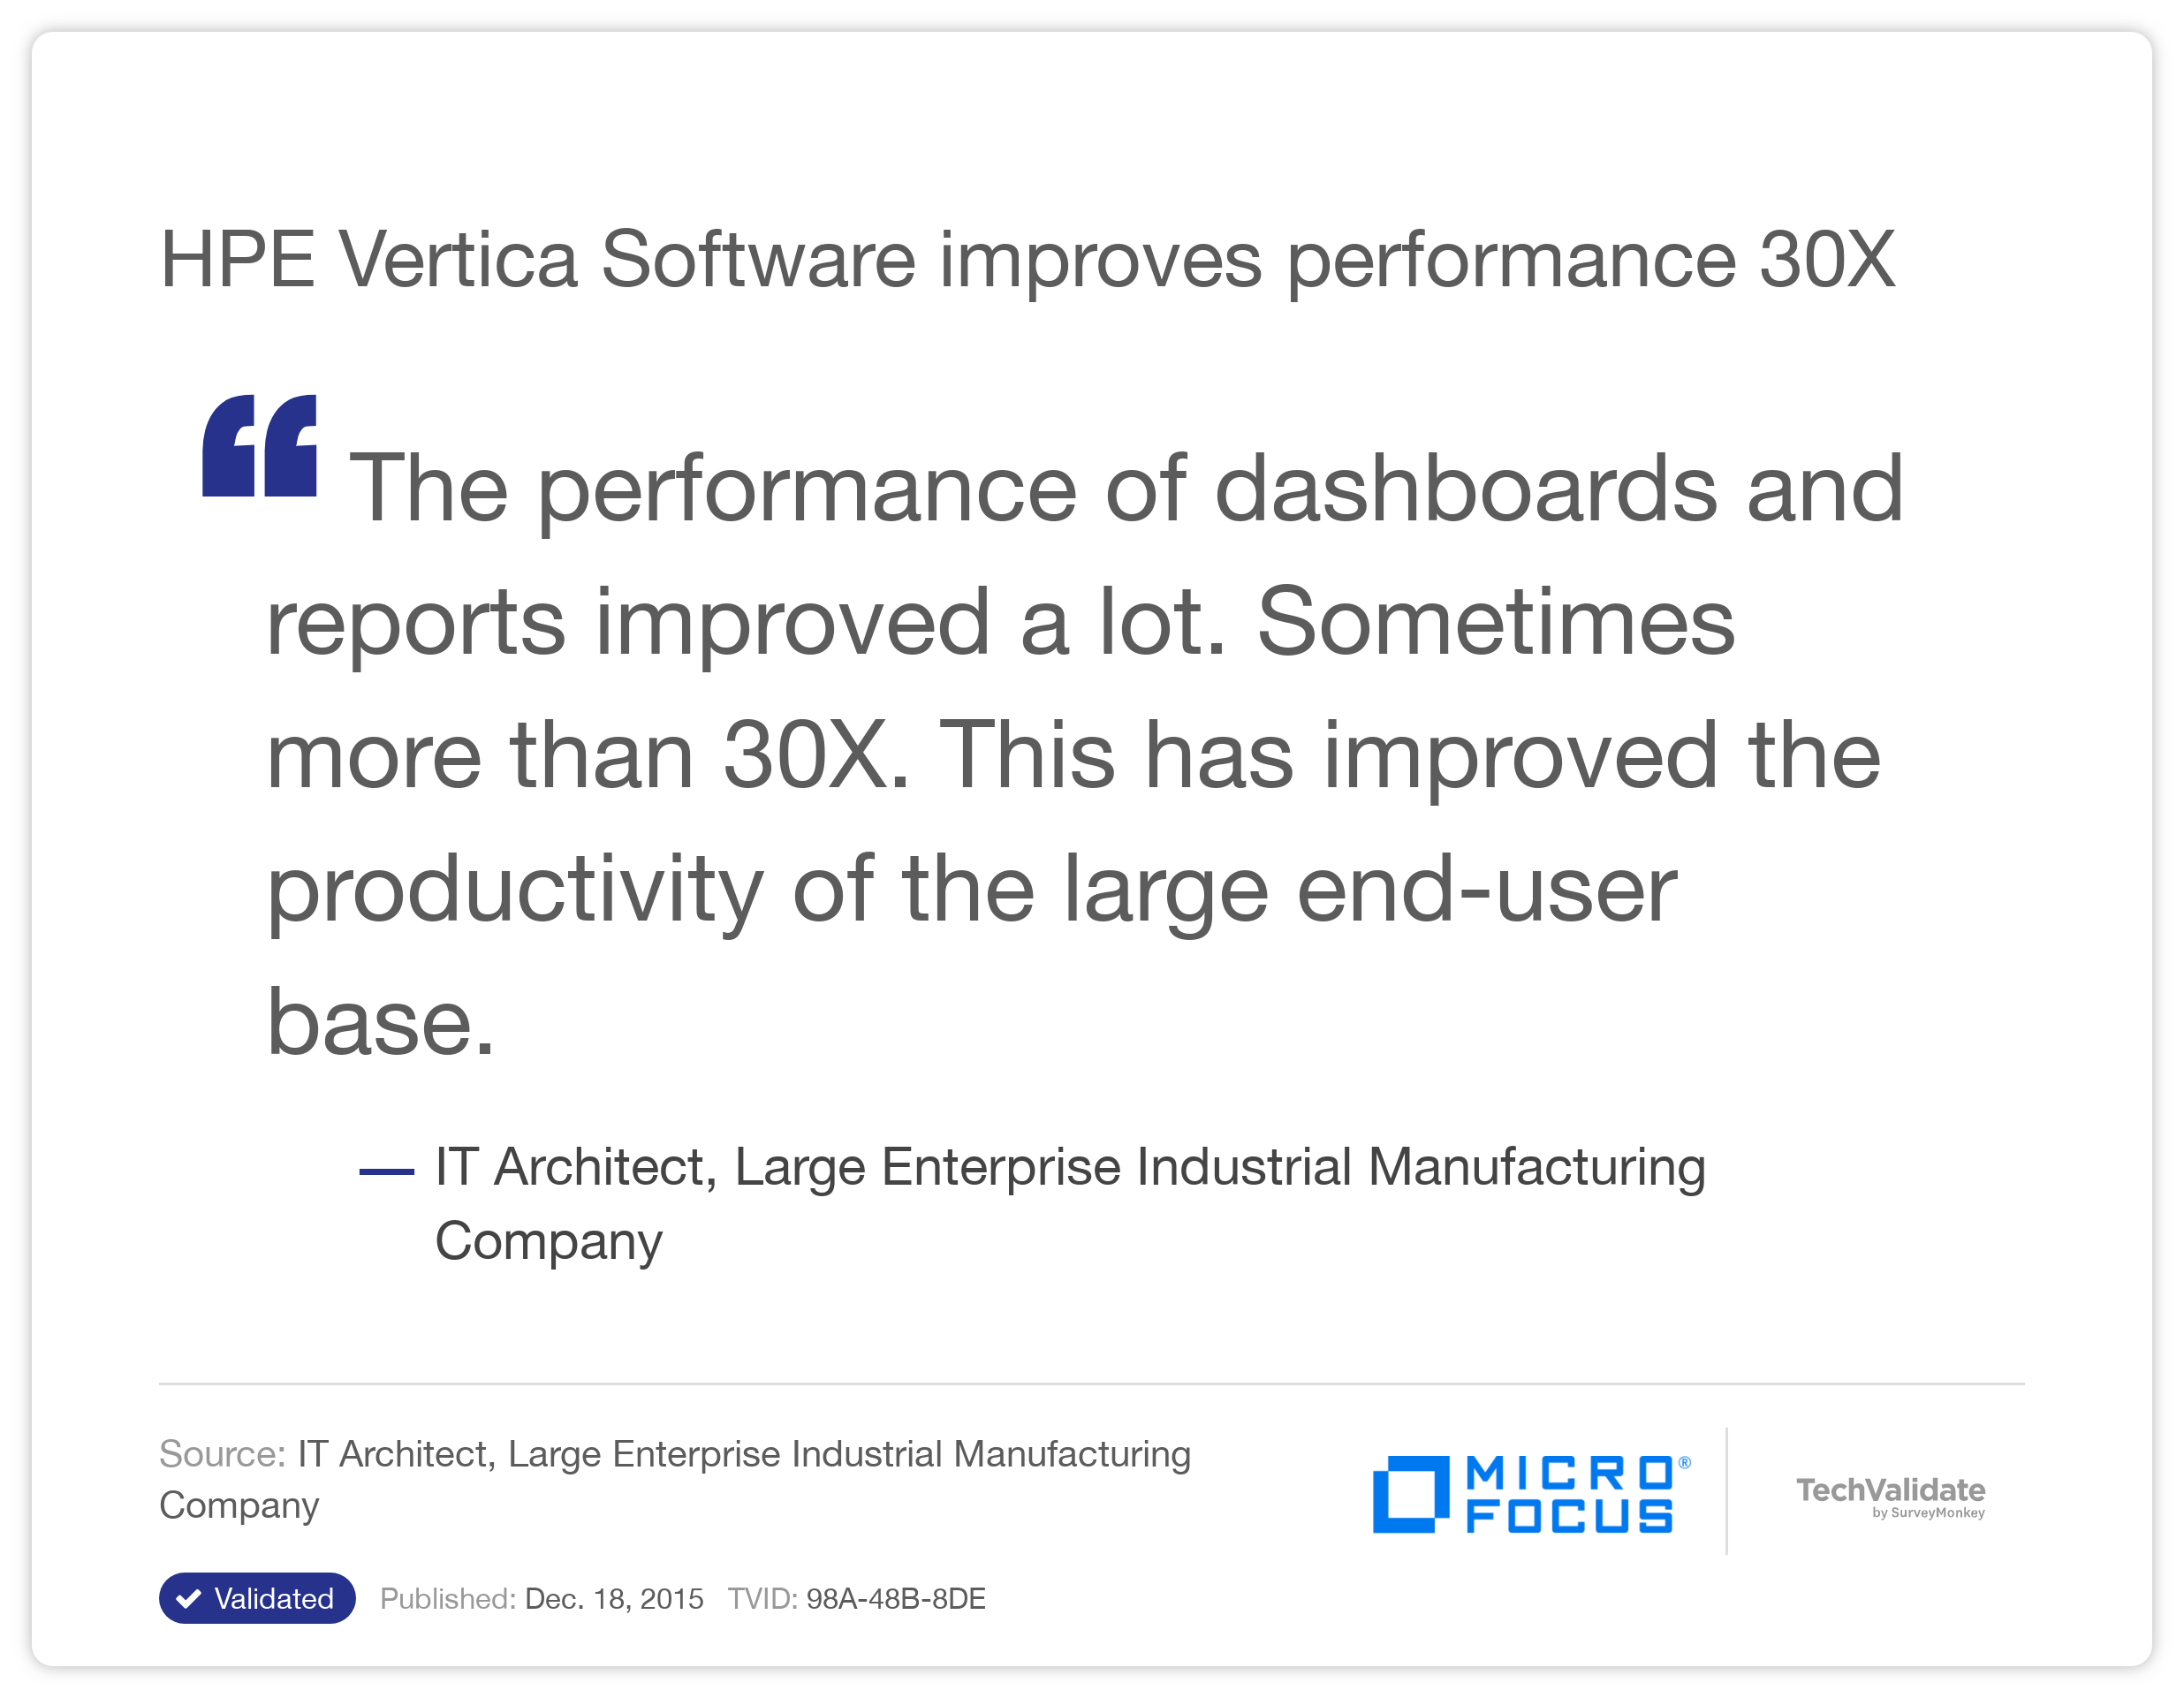 HP Vertica Software improves performance 30X